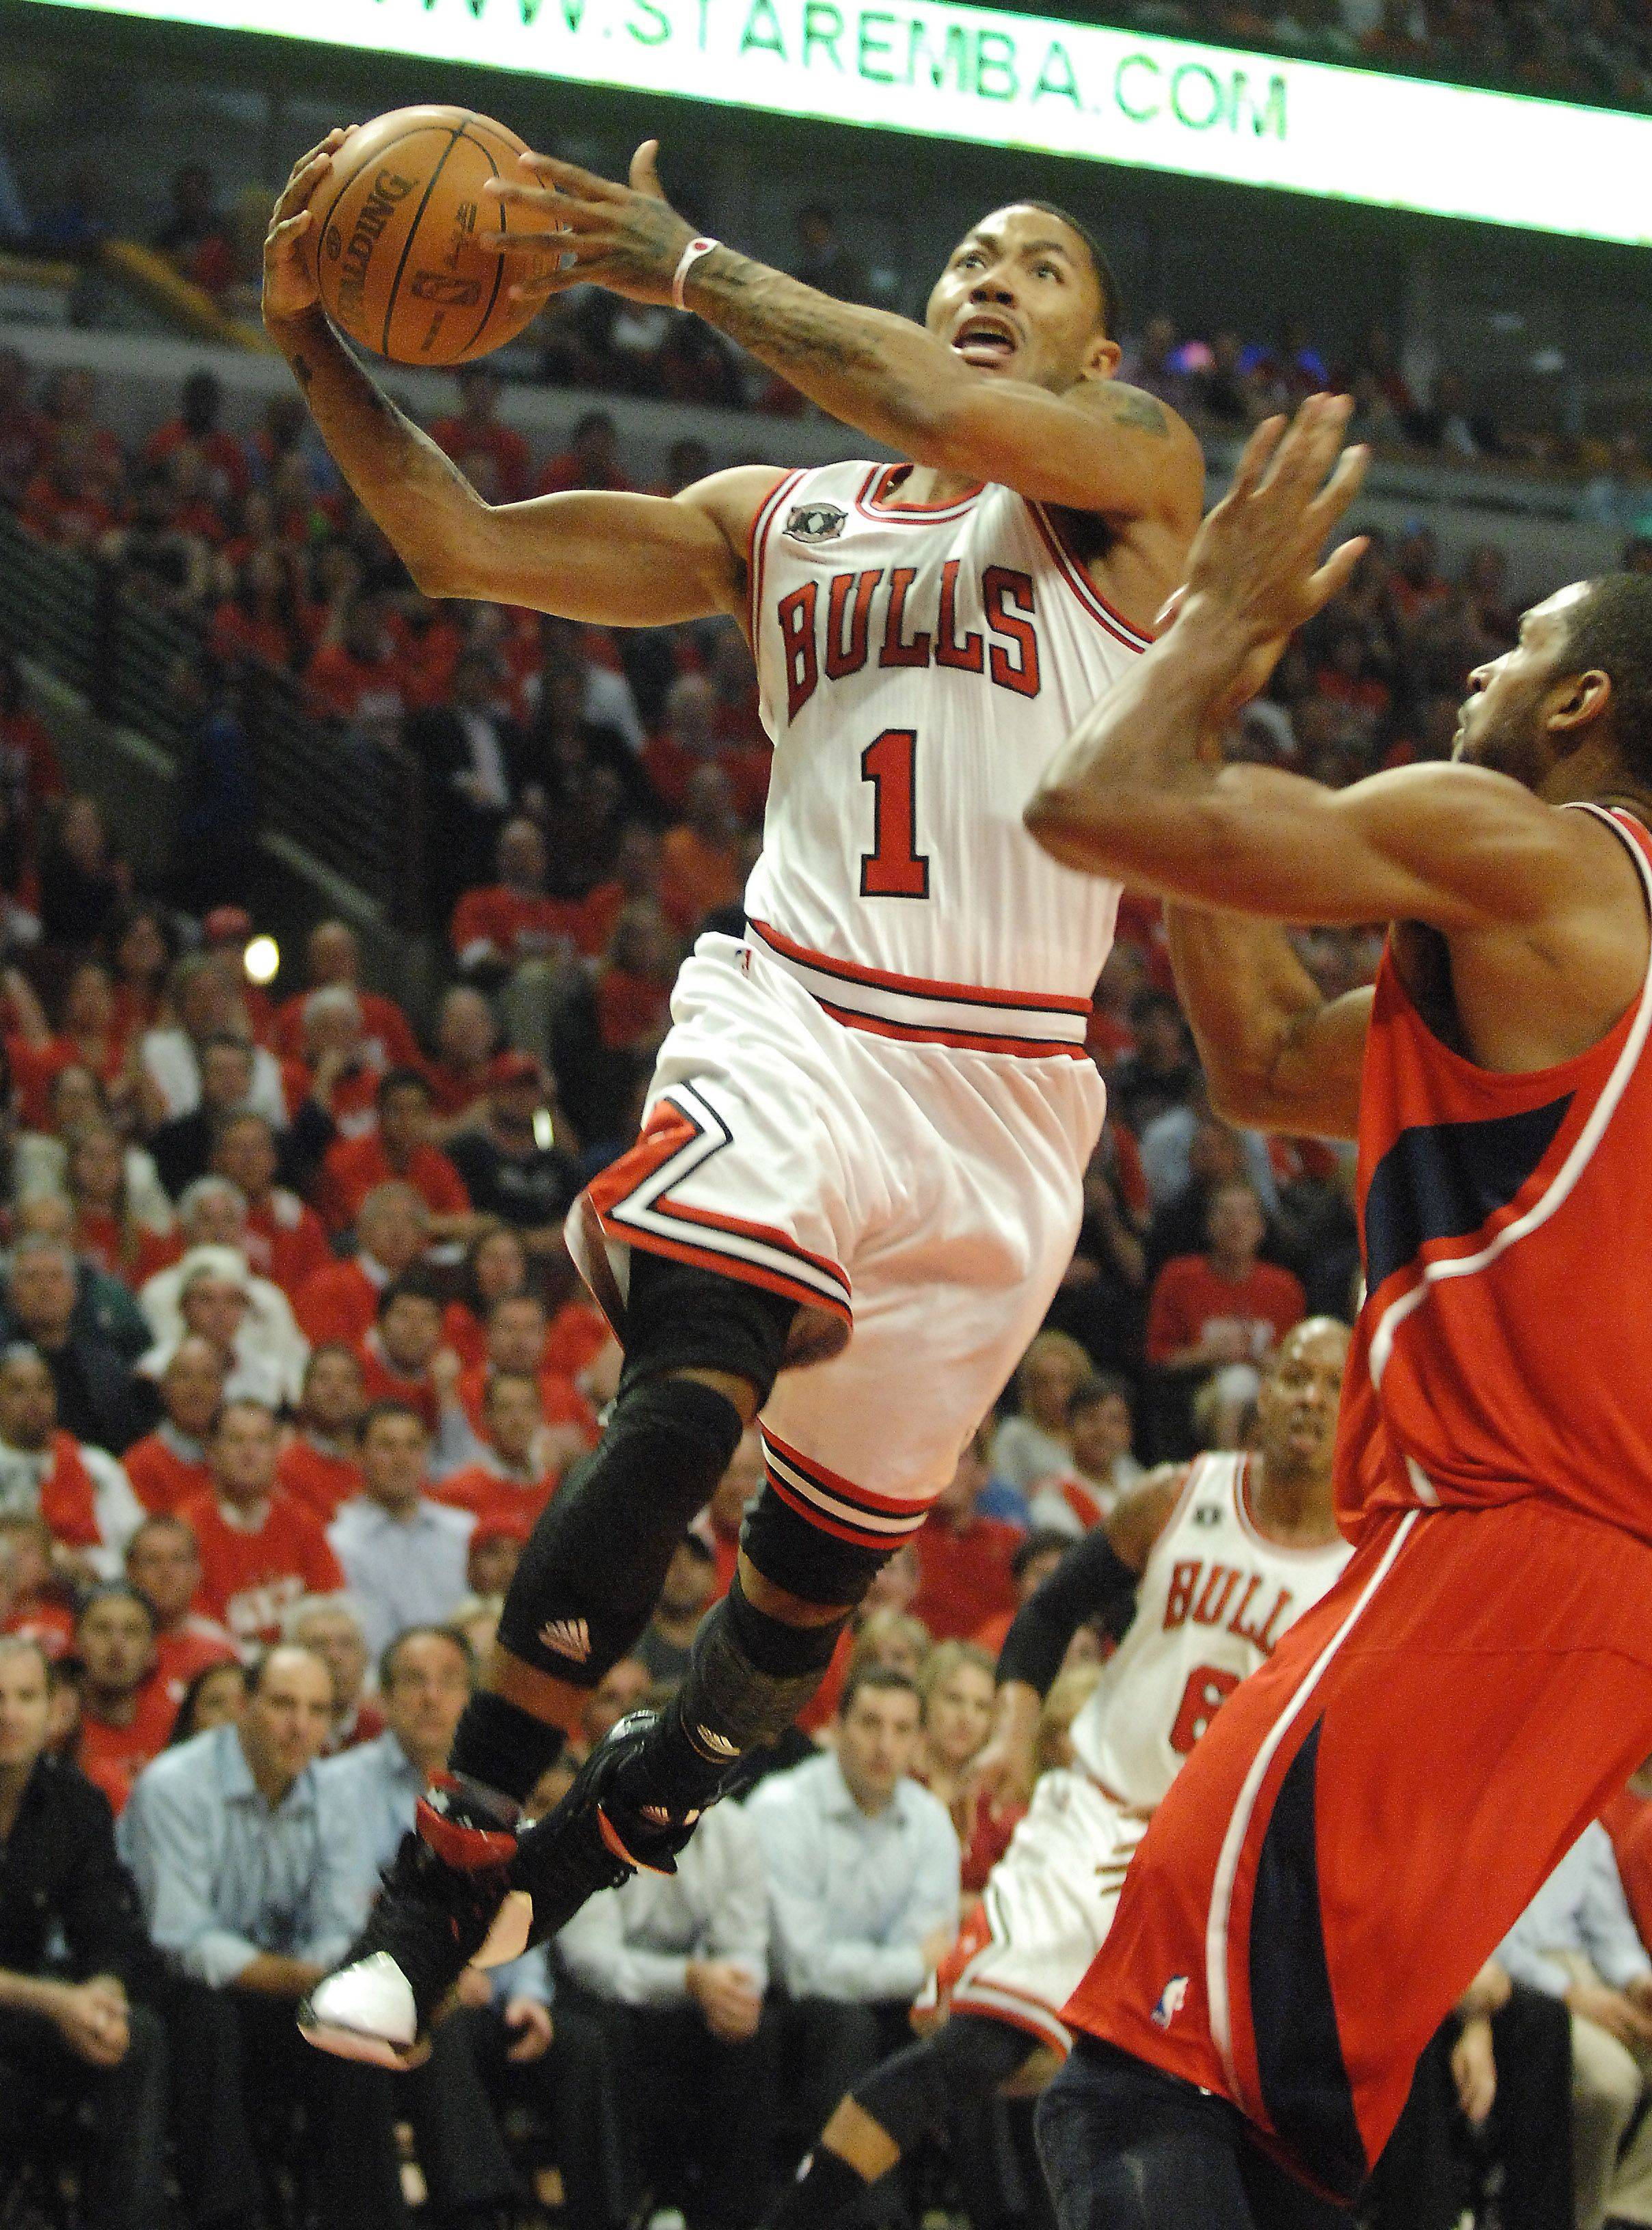 Guard Derrick Rose drives to the hoop at the United Center in Chicago Tuesday.